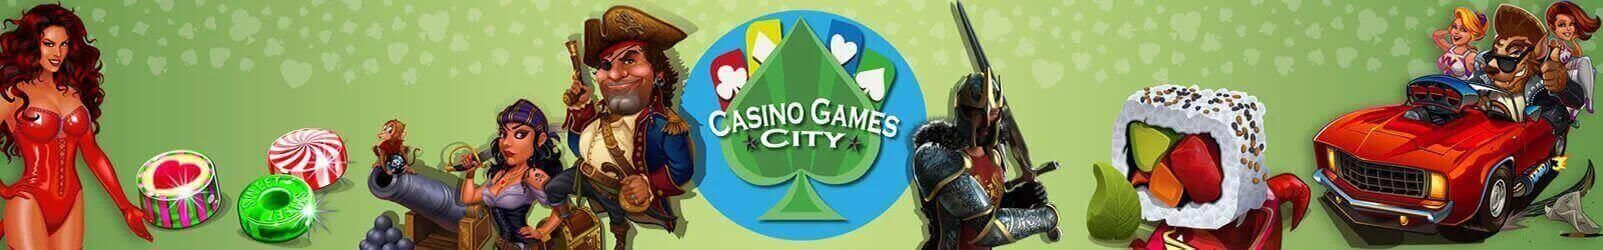 Casino Games City provides a number of free pokies to players. The pokies available on the site allow newcomers to try out a range of different slot machines and to get a feel for the ones that appeal most to them, without depleting their funds in the process.